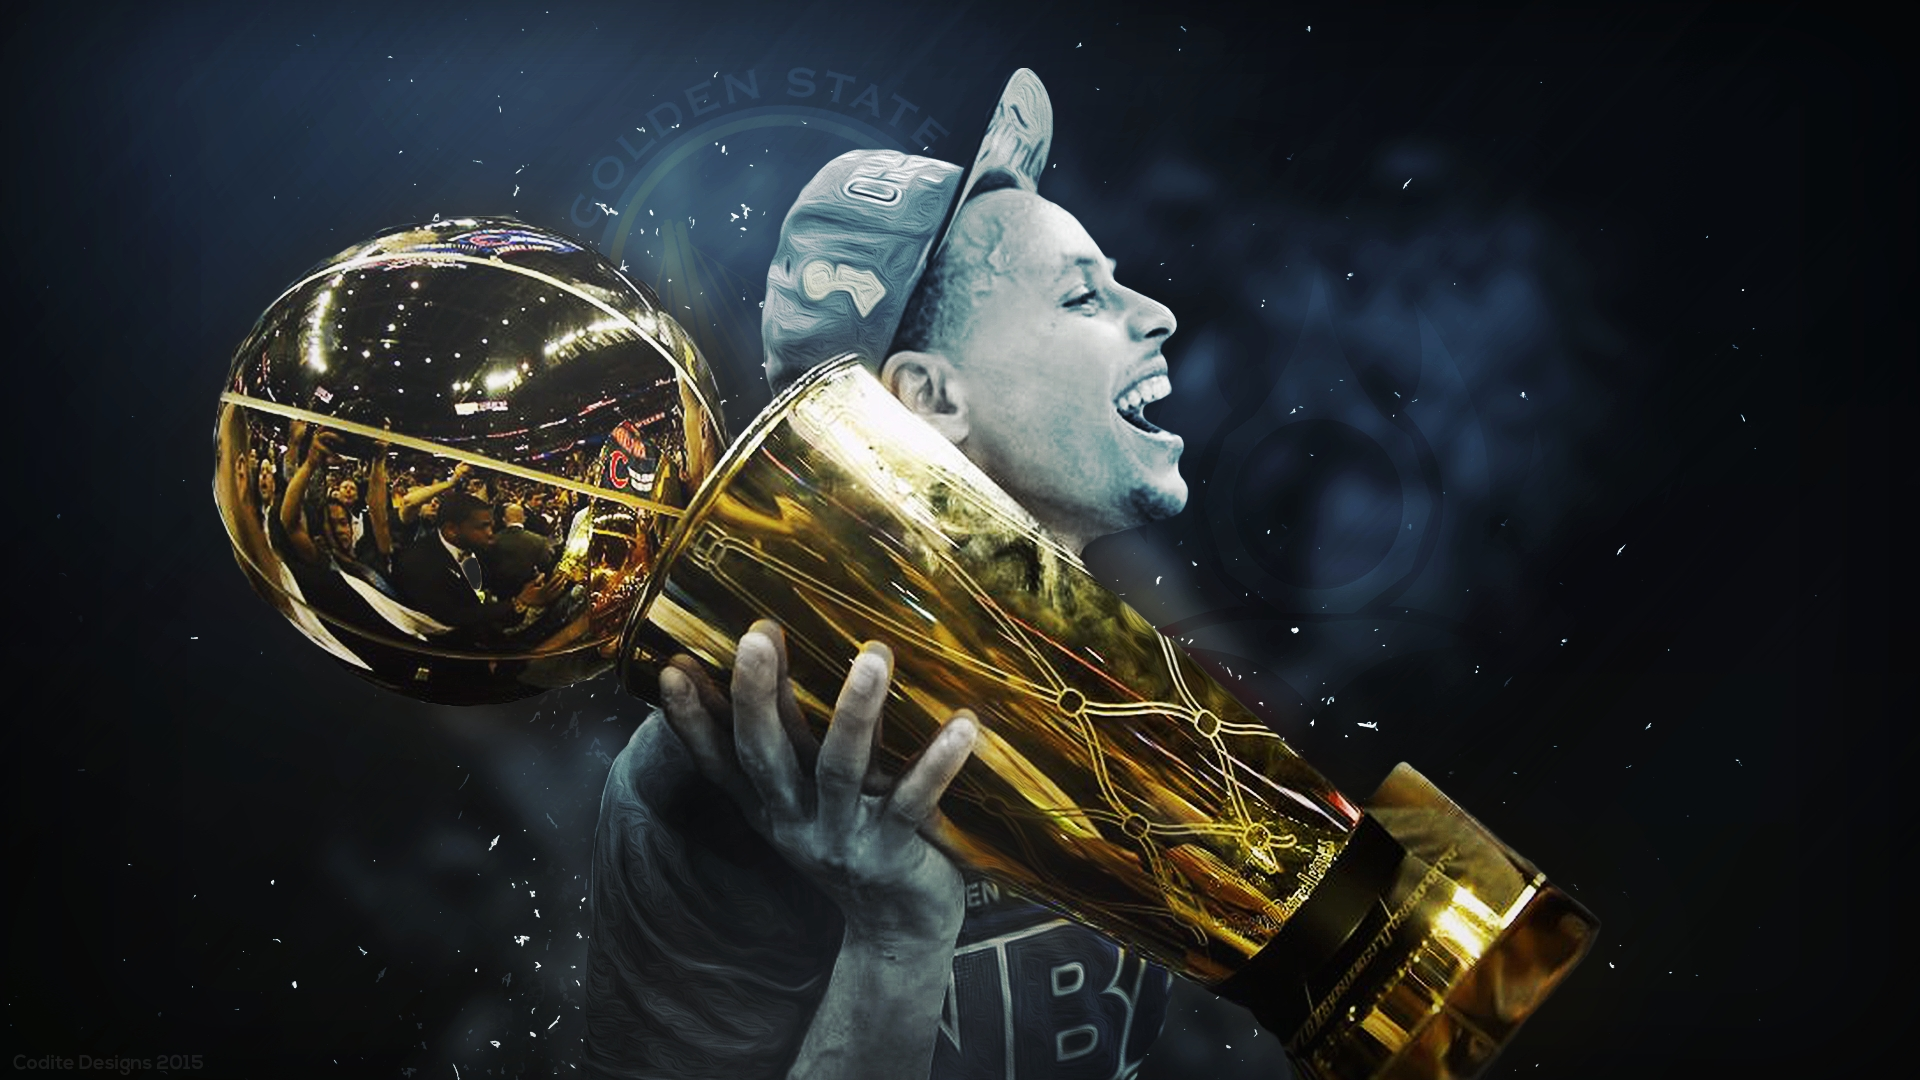 http://stephencurrywallpaper/download-free-stephen-curry-dribble